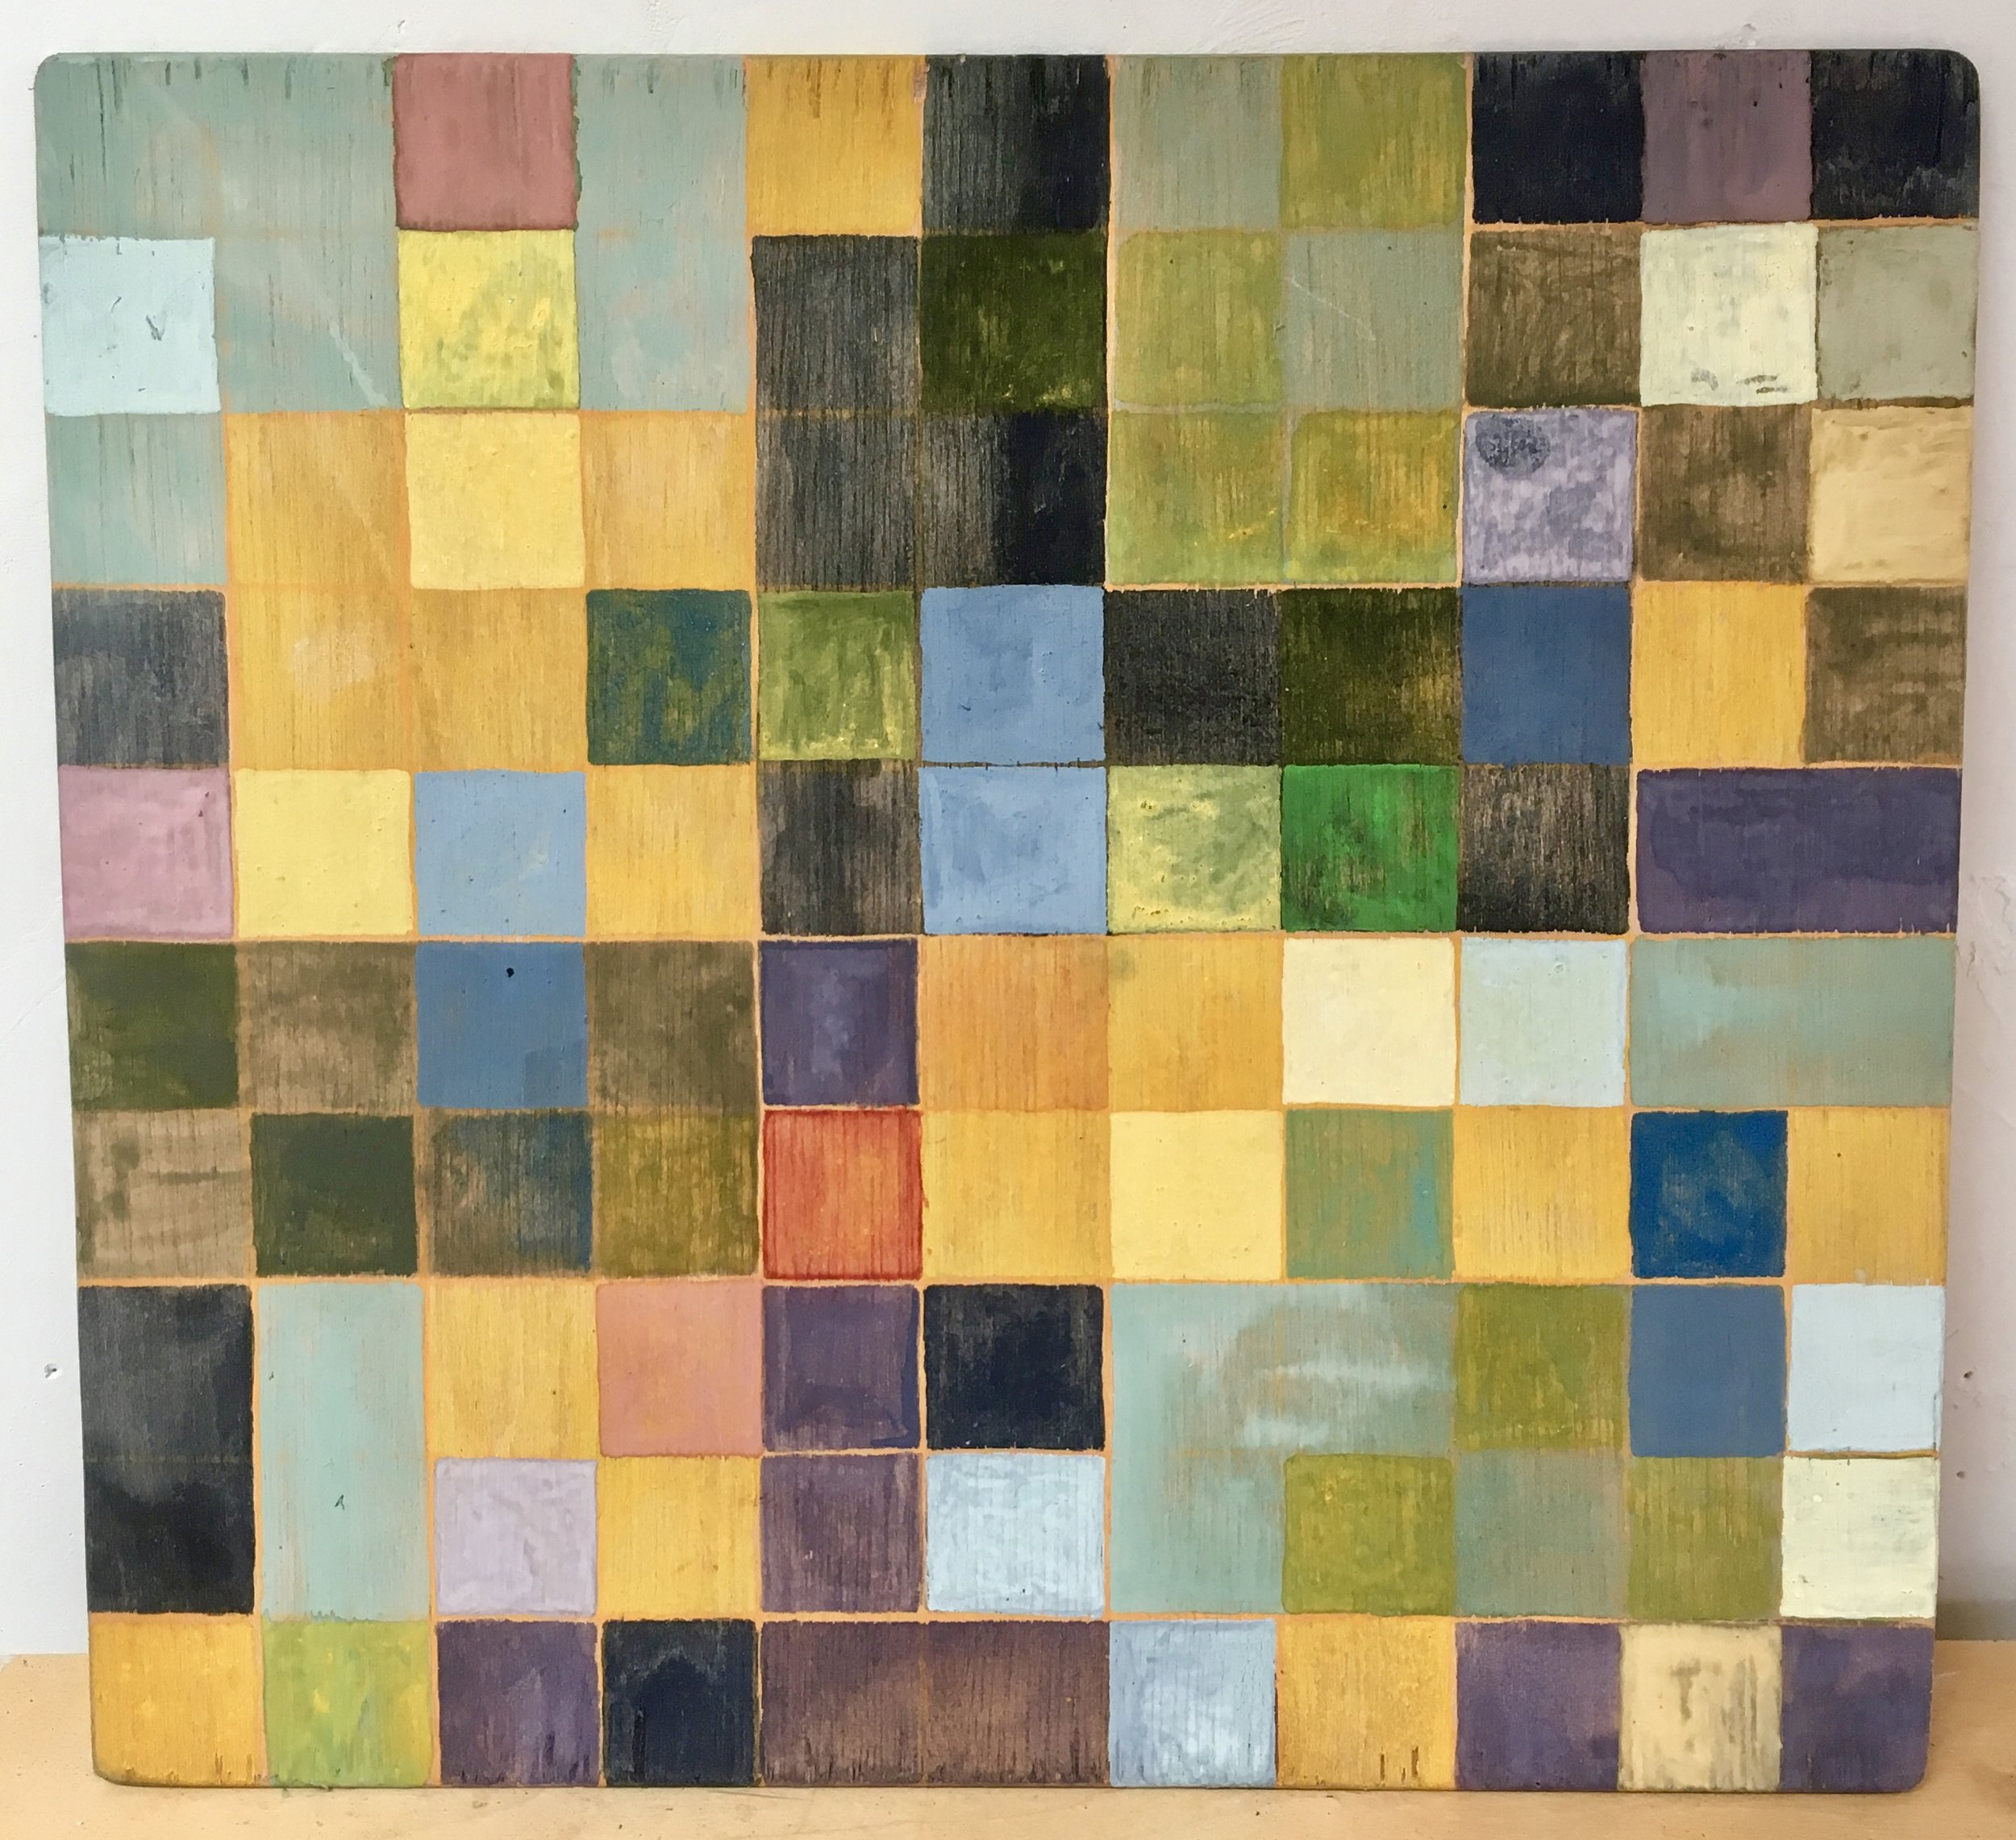 """HIDDEN COLOR #2: PLANT & STONE PIGMENTS + ONE SYNTHETIC COLOR ON 10""""x 11"""" WOOD PANEL //PAINTING + COLOR CONVERSATION, $77.00 — $111.00, sliding scale       SOLD"""